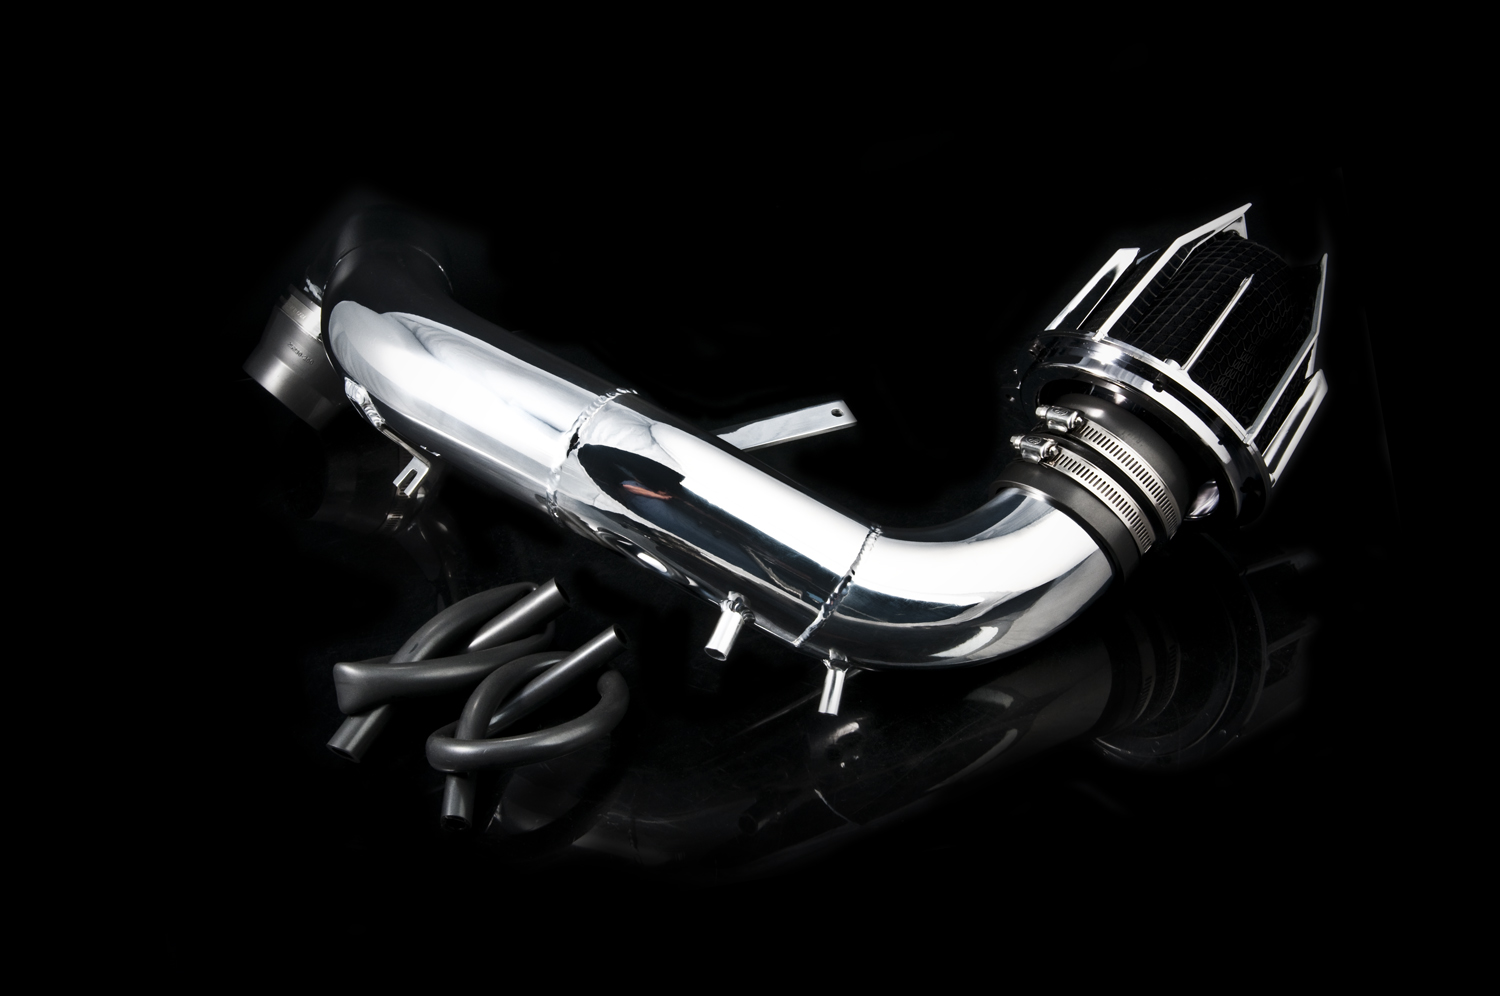 Dodge  SRT-4  ( No Shield ) Turbo 2003-2005 Weapon-R Dragon Air Intake